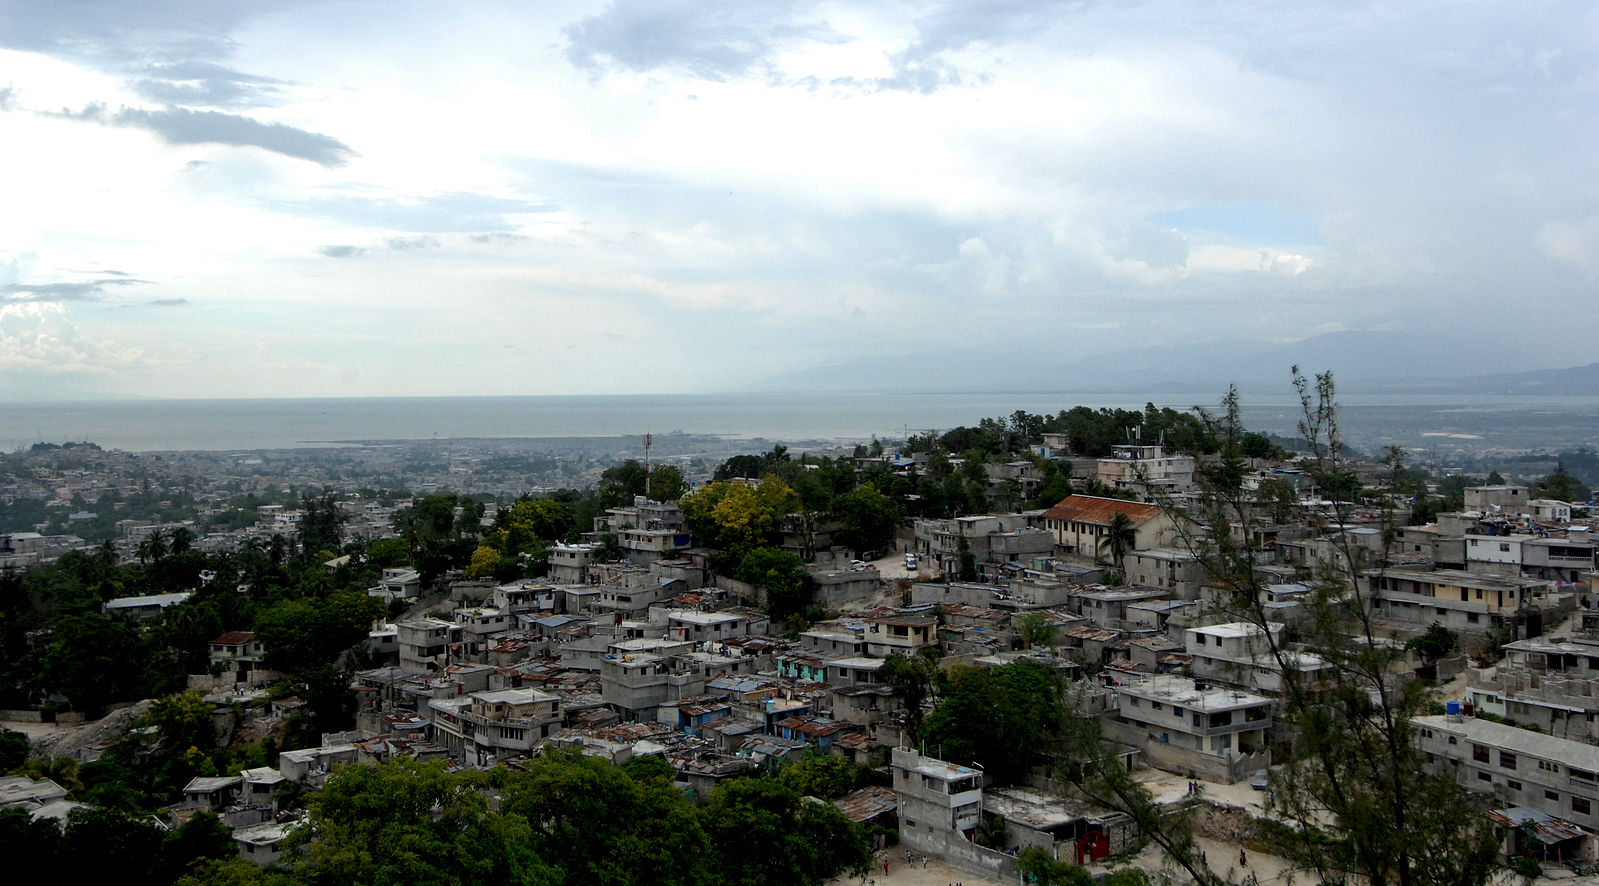 Port-au-Prince, Haiti. Source: https://commons.wikimedia.org